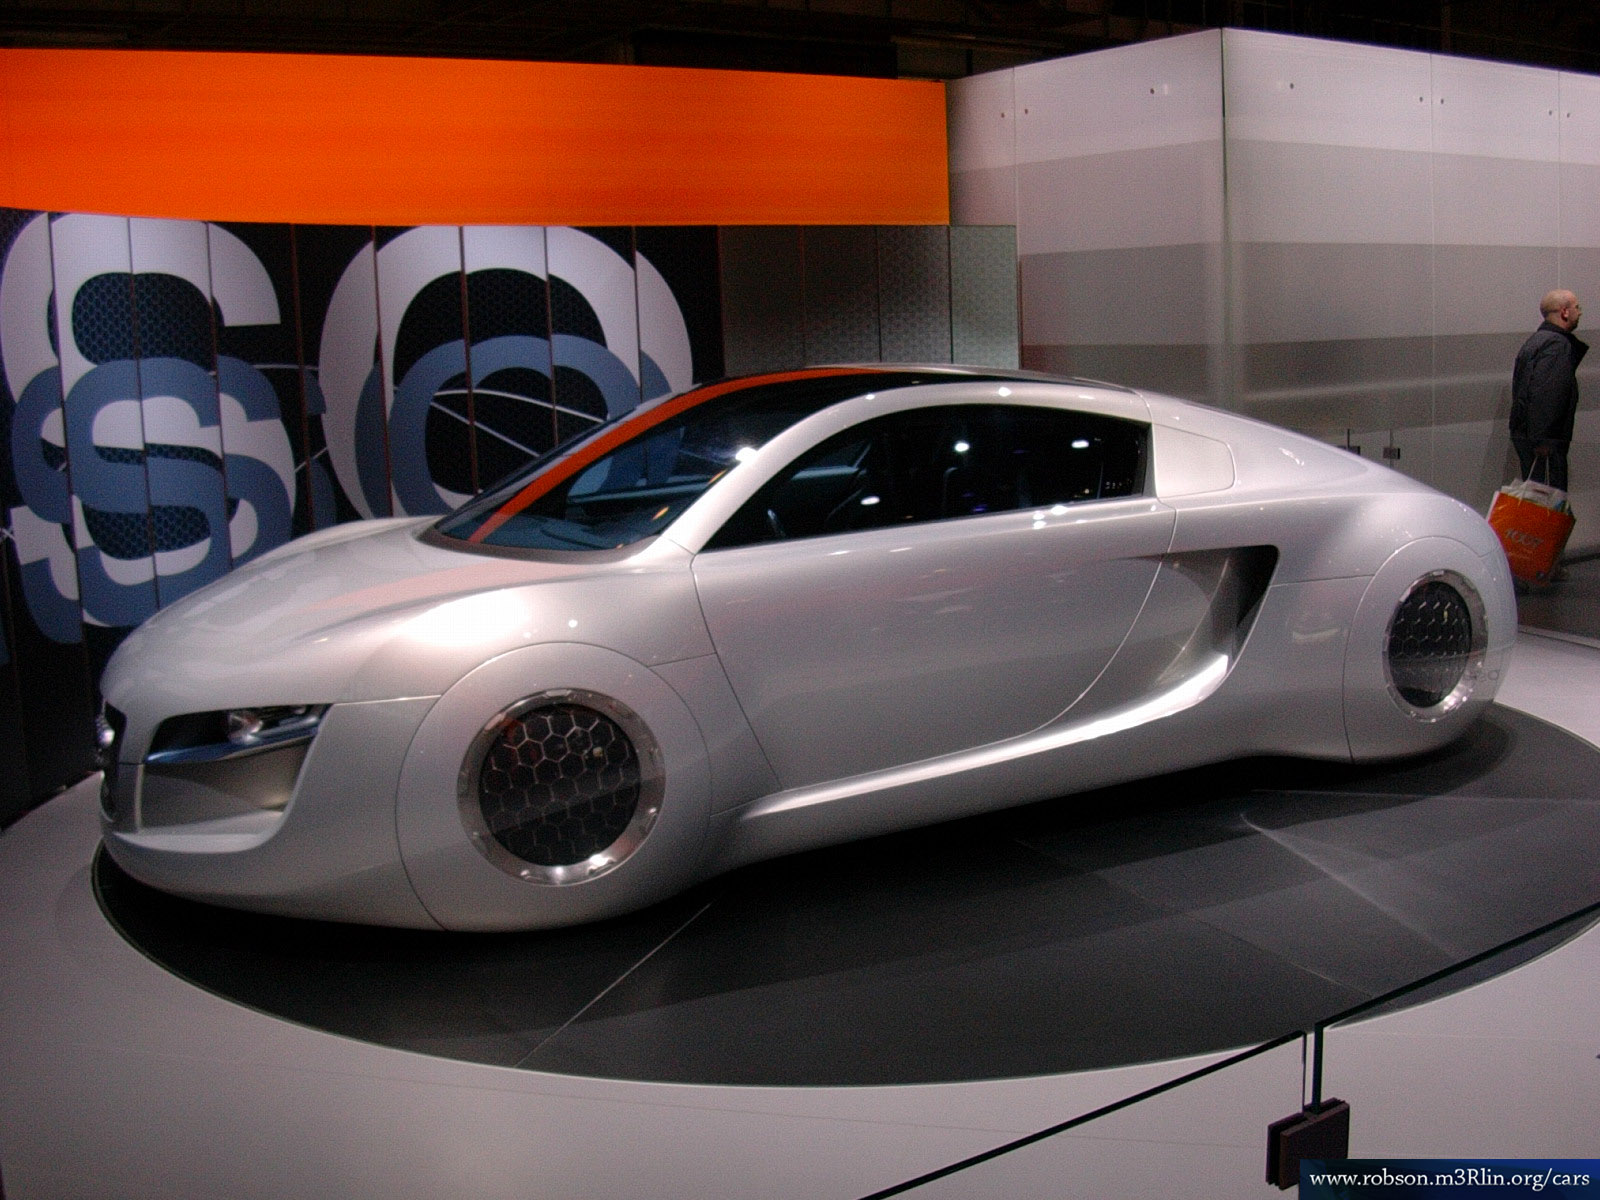 Changing World And Internet Marketing: Future Cars